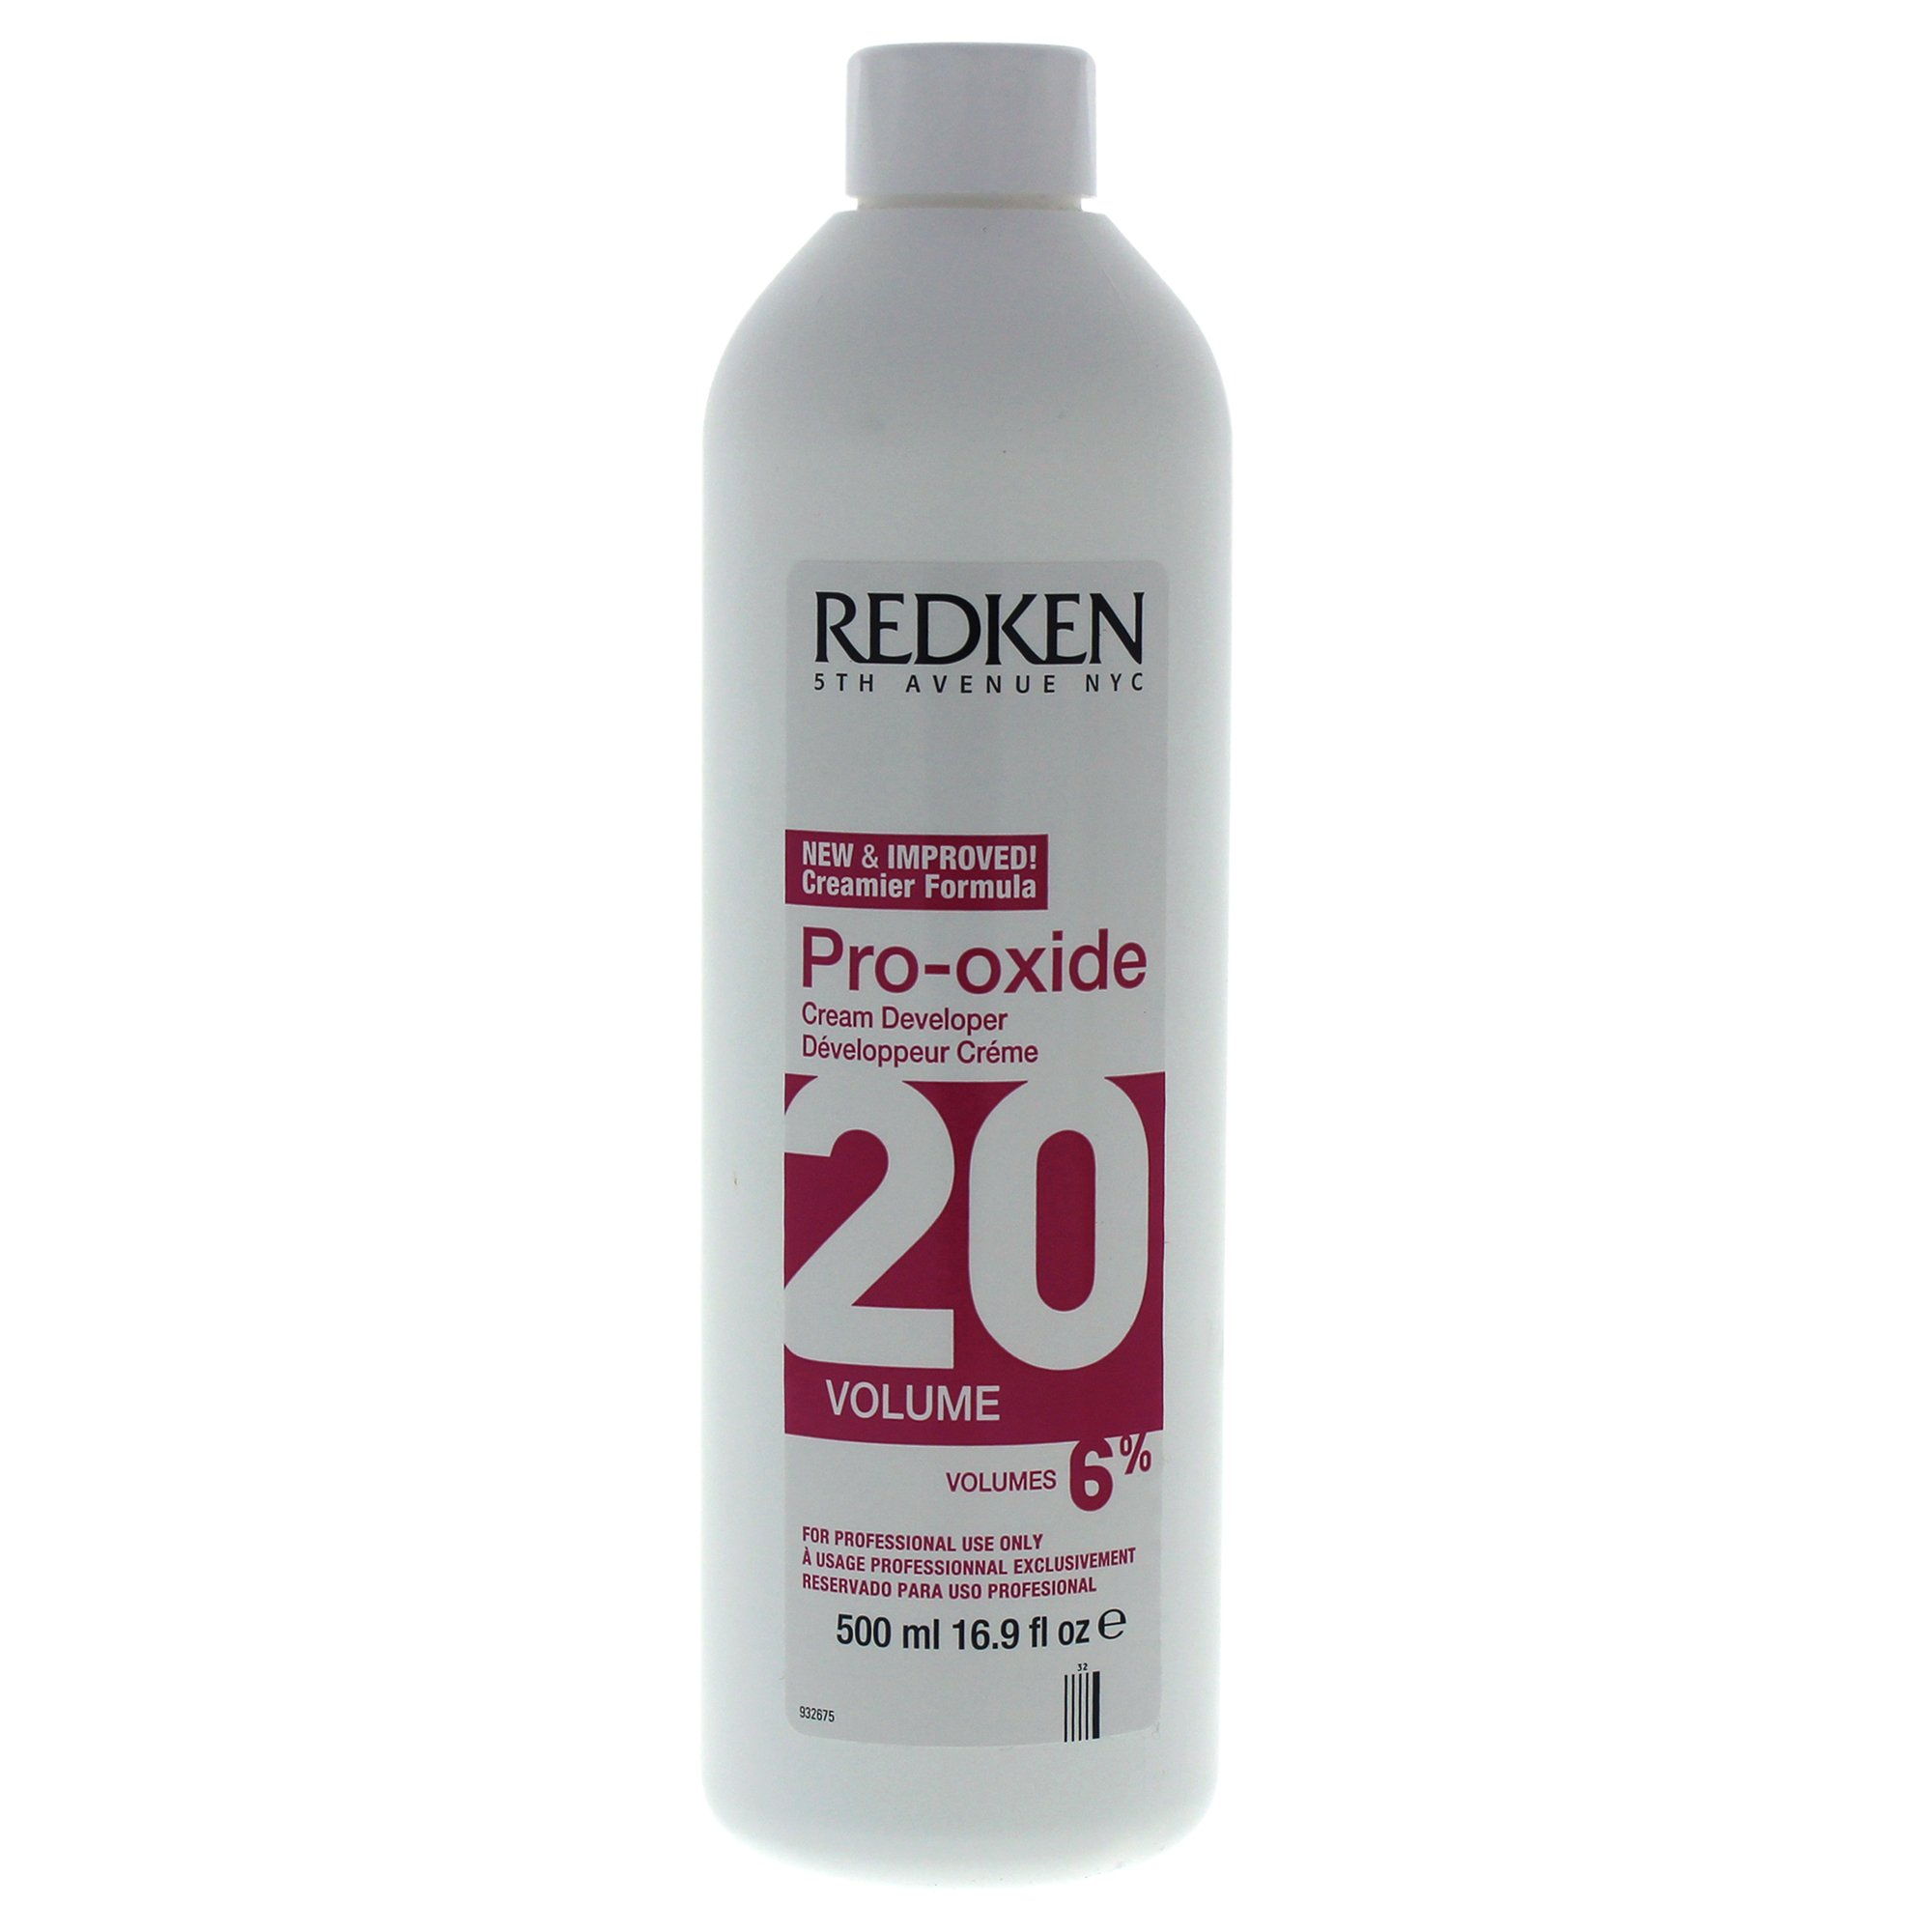 Redken Pro-Oxide Cream Developer 20 Volume Treatment for Unisex, 16.9 Ounce by REDKEN